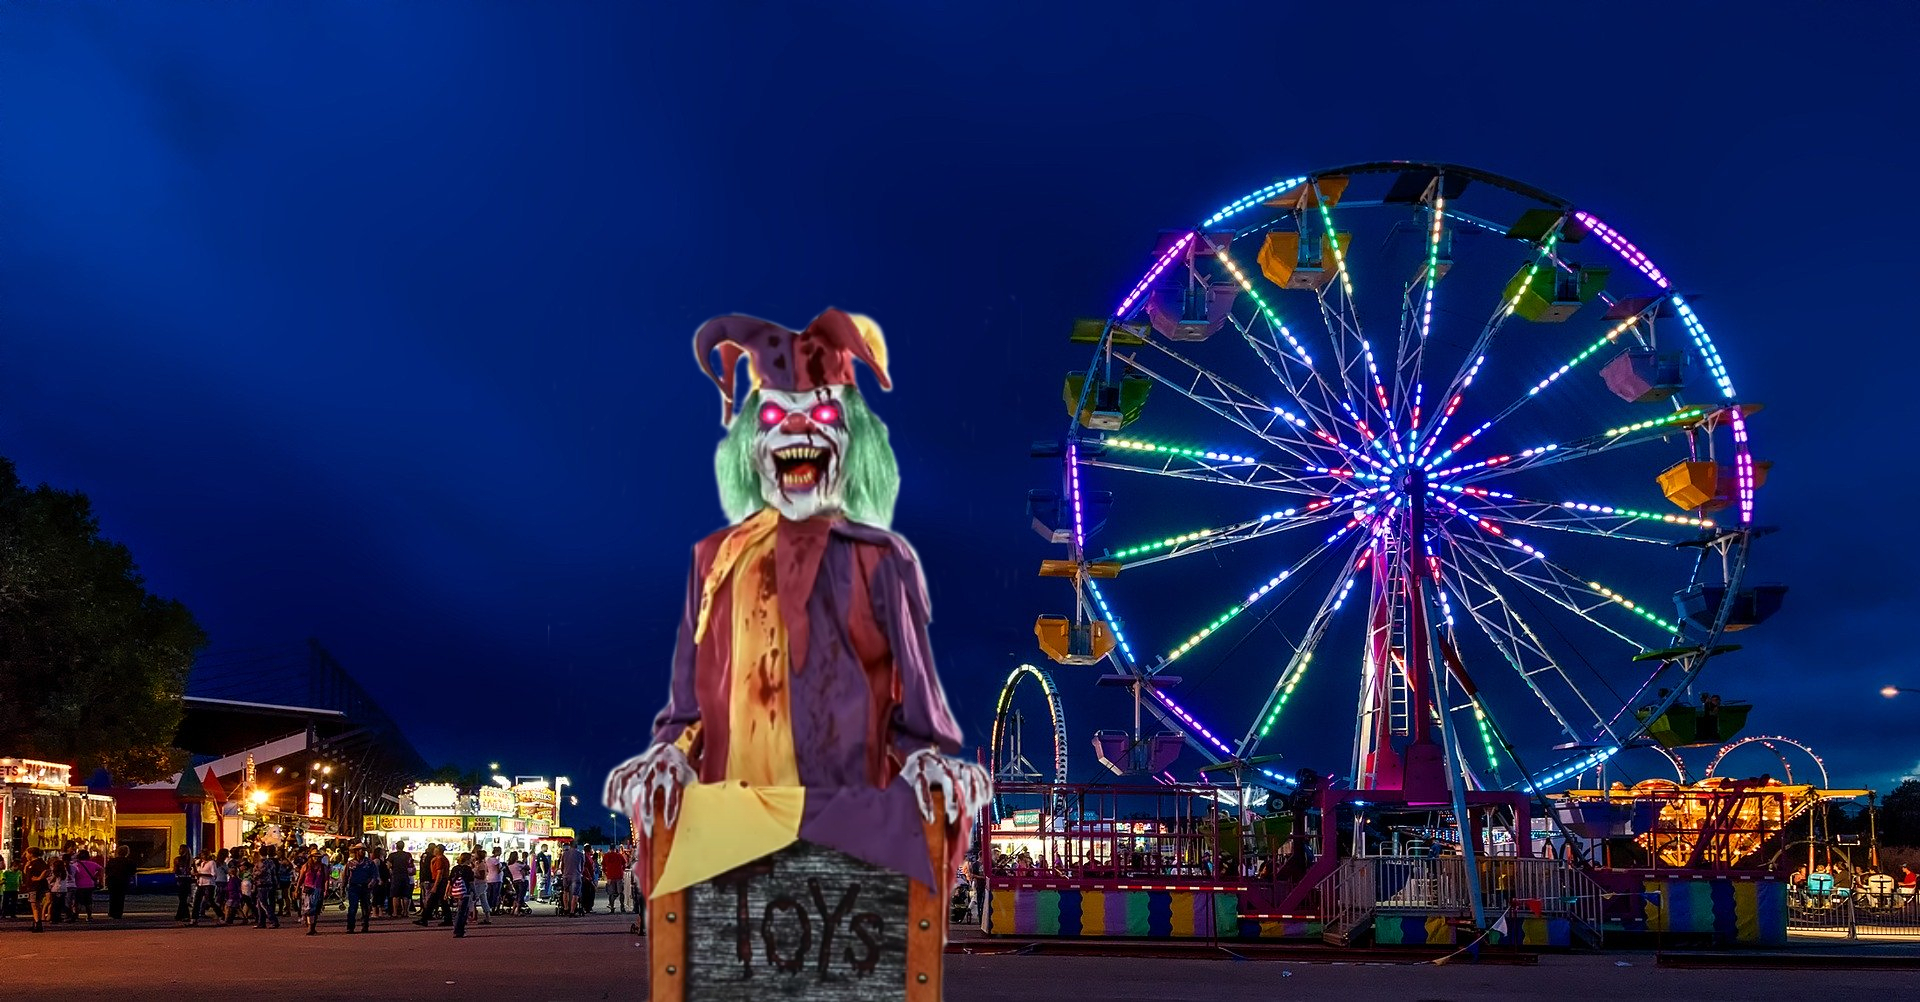 Chester The Spine Chilling Carnival Clown Jester